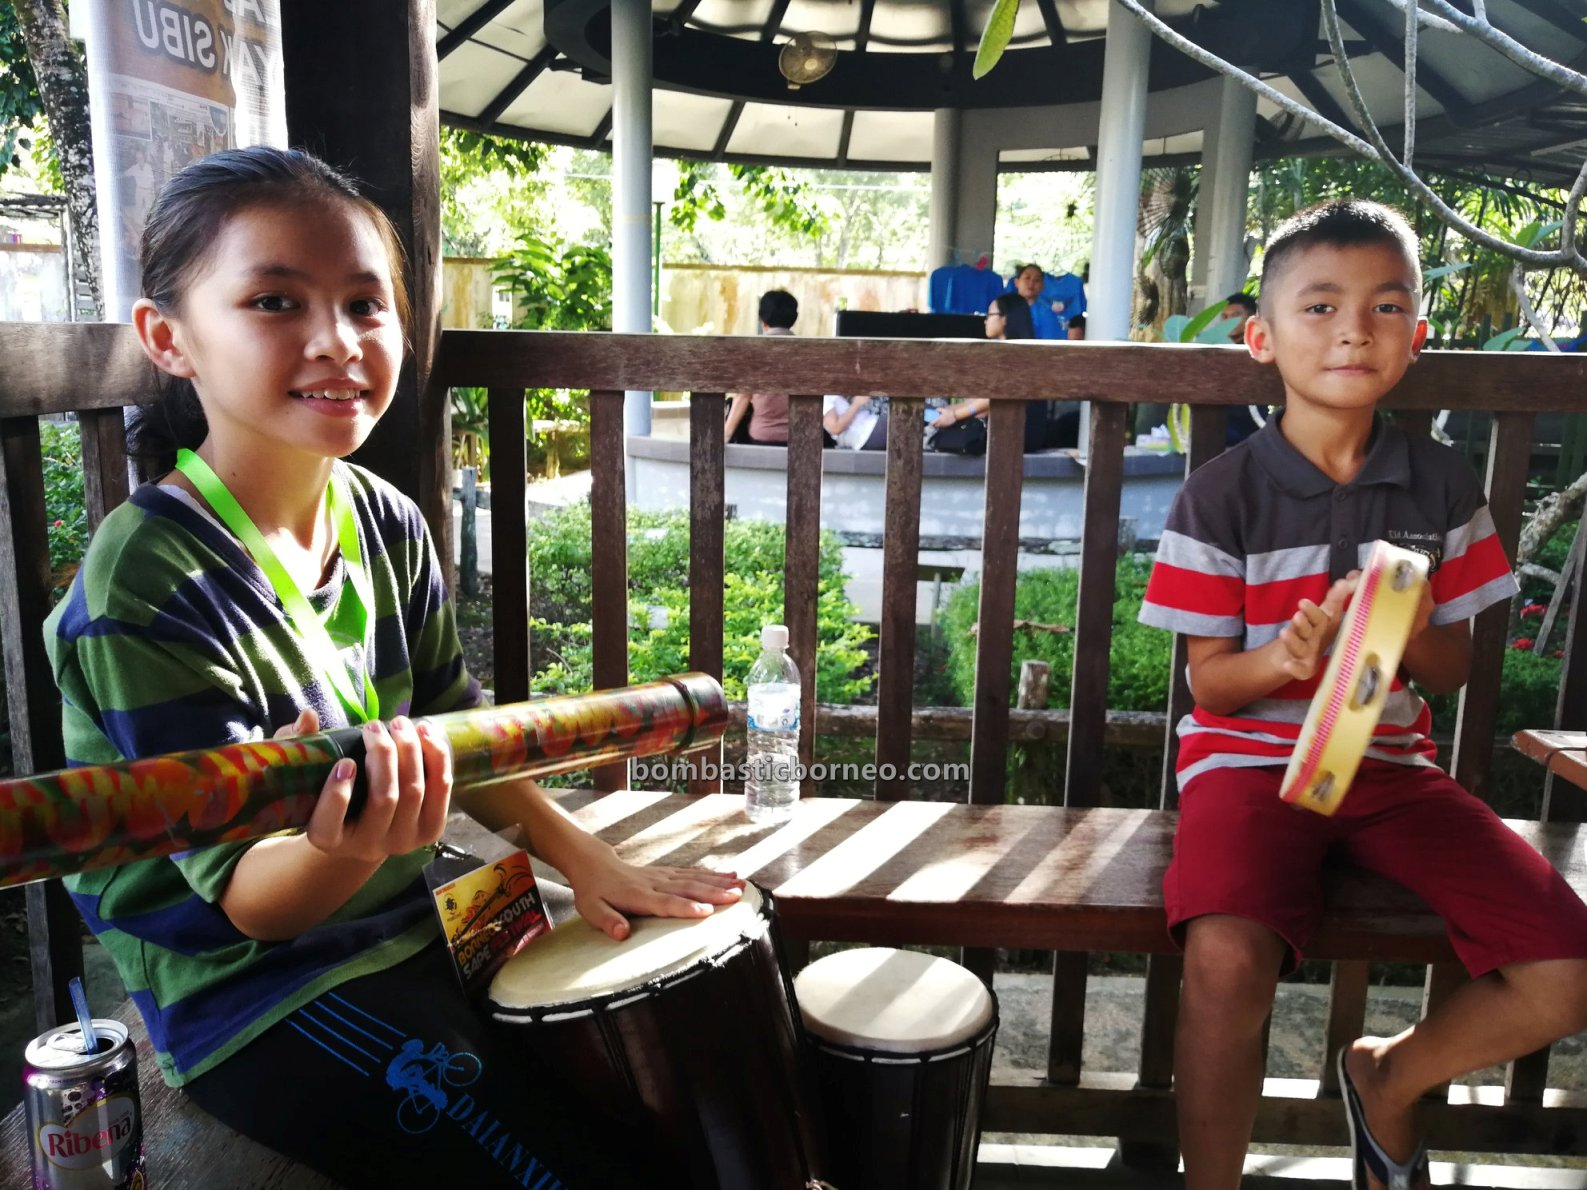 traditional, backpackers, culture, event, native, ethnic, tribe, orang ulu, musical instrument, Sibu, One Malaysia Cultural Village, Tourism, travel guide 探索婆罗洲原住民, 诗巫砂拉越音乐文化